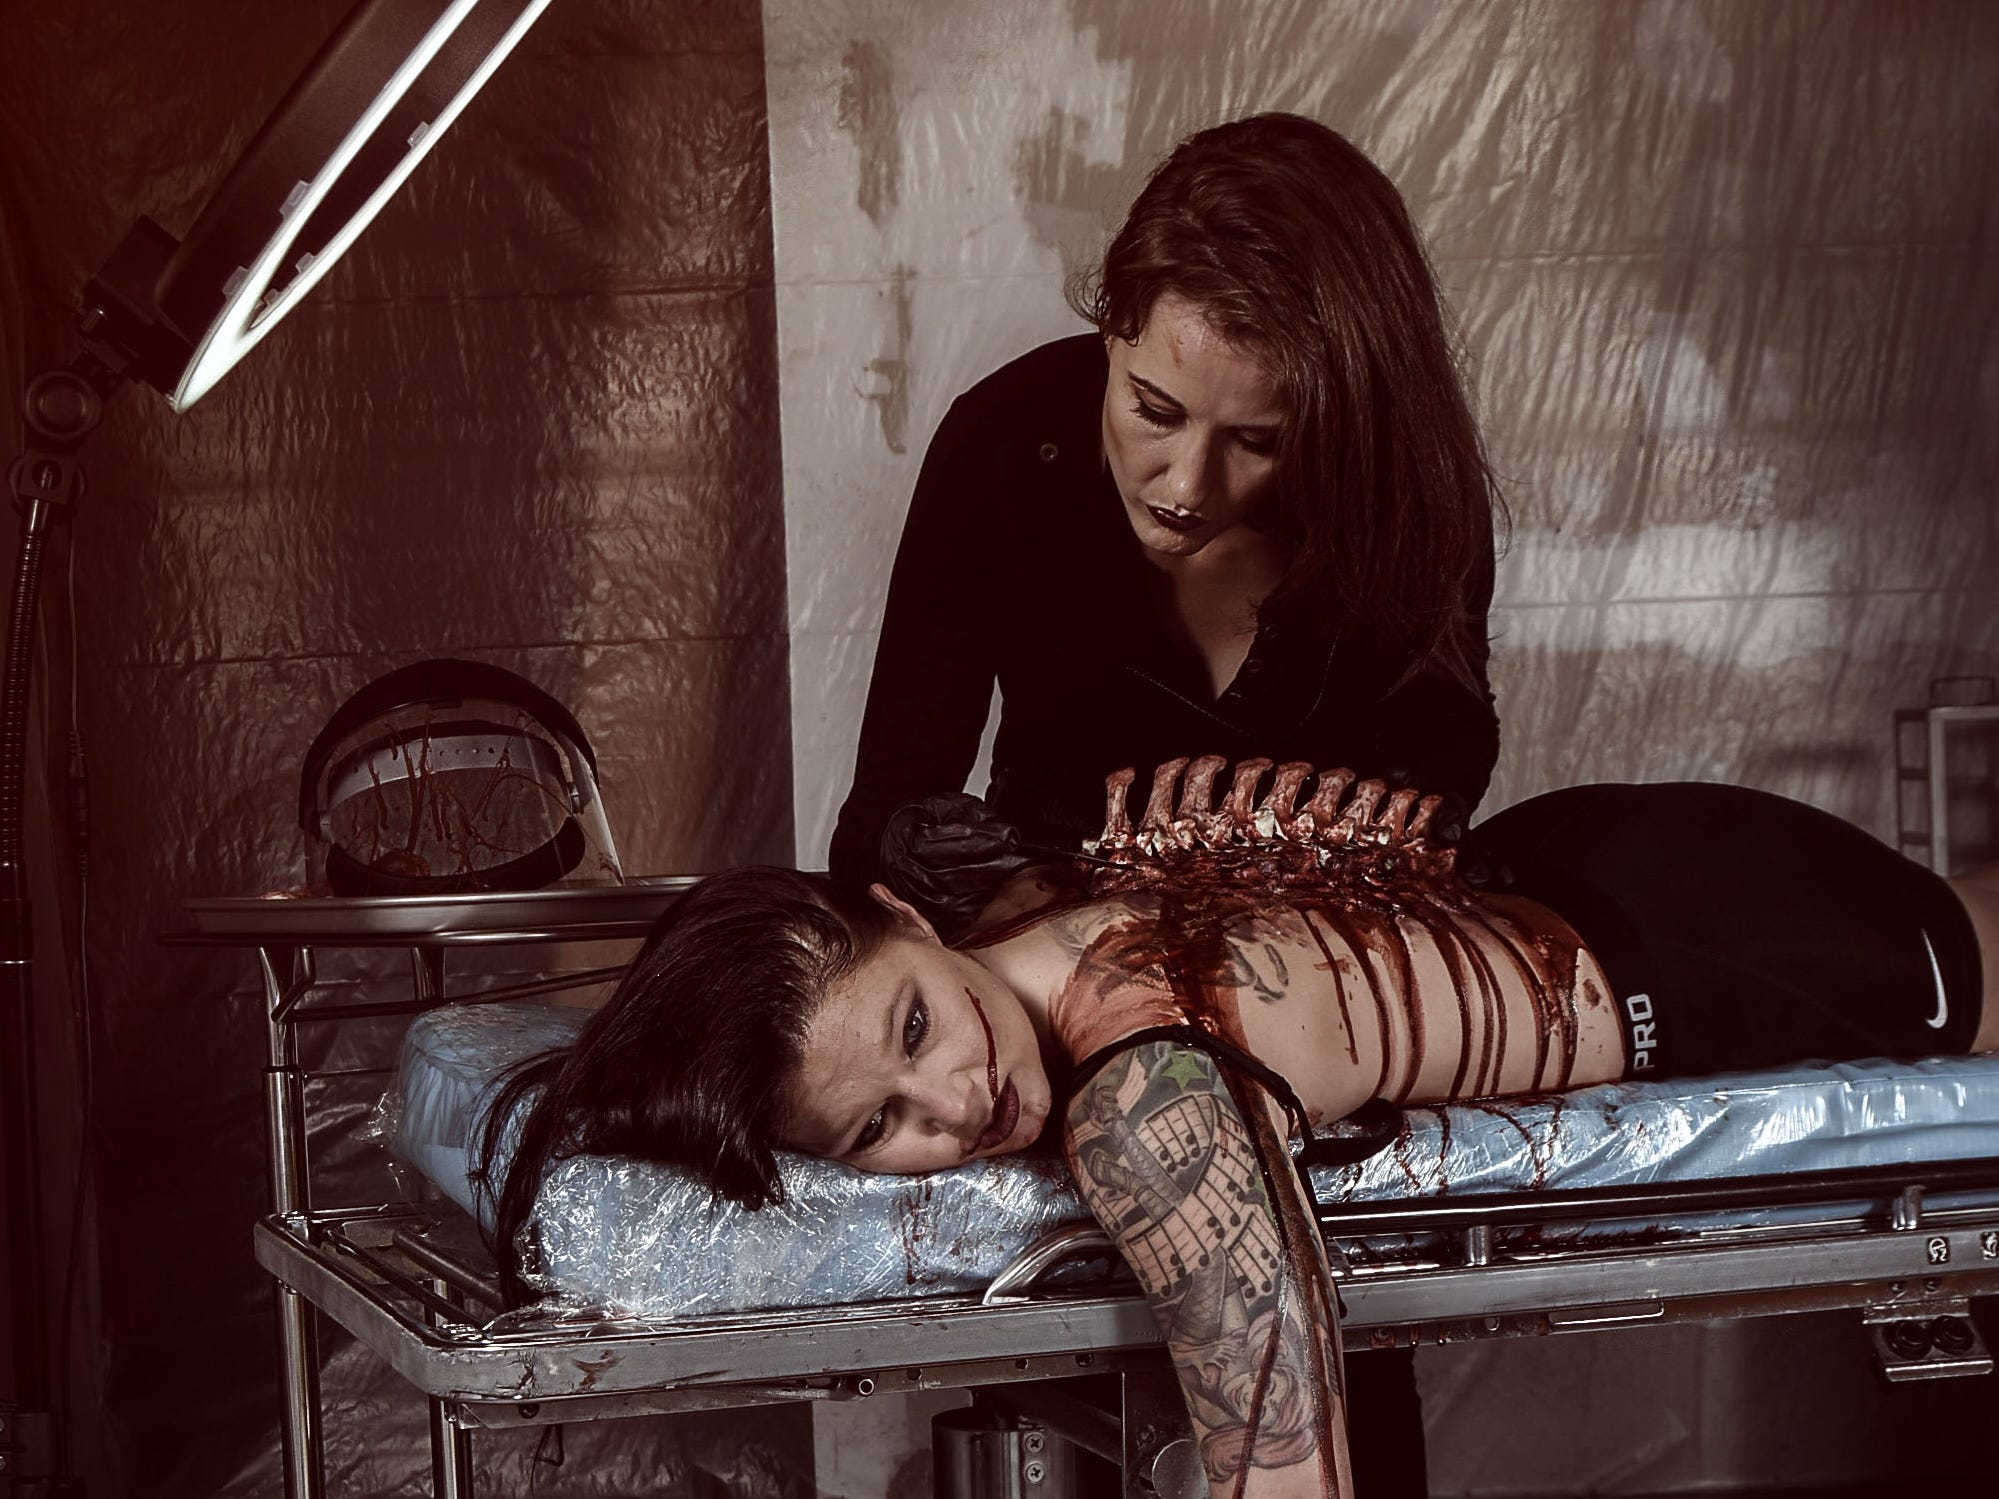 Lori Cannon portrays the physician with Leighann Word as the victim in this horror-themed photo session by Mallory Bertrand. Special effects are by Ash Mac.